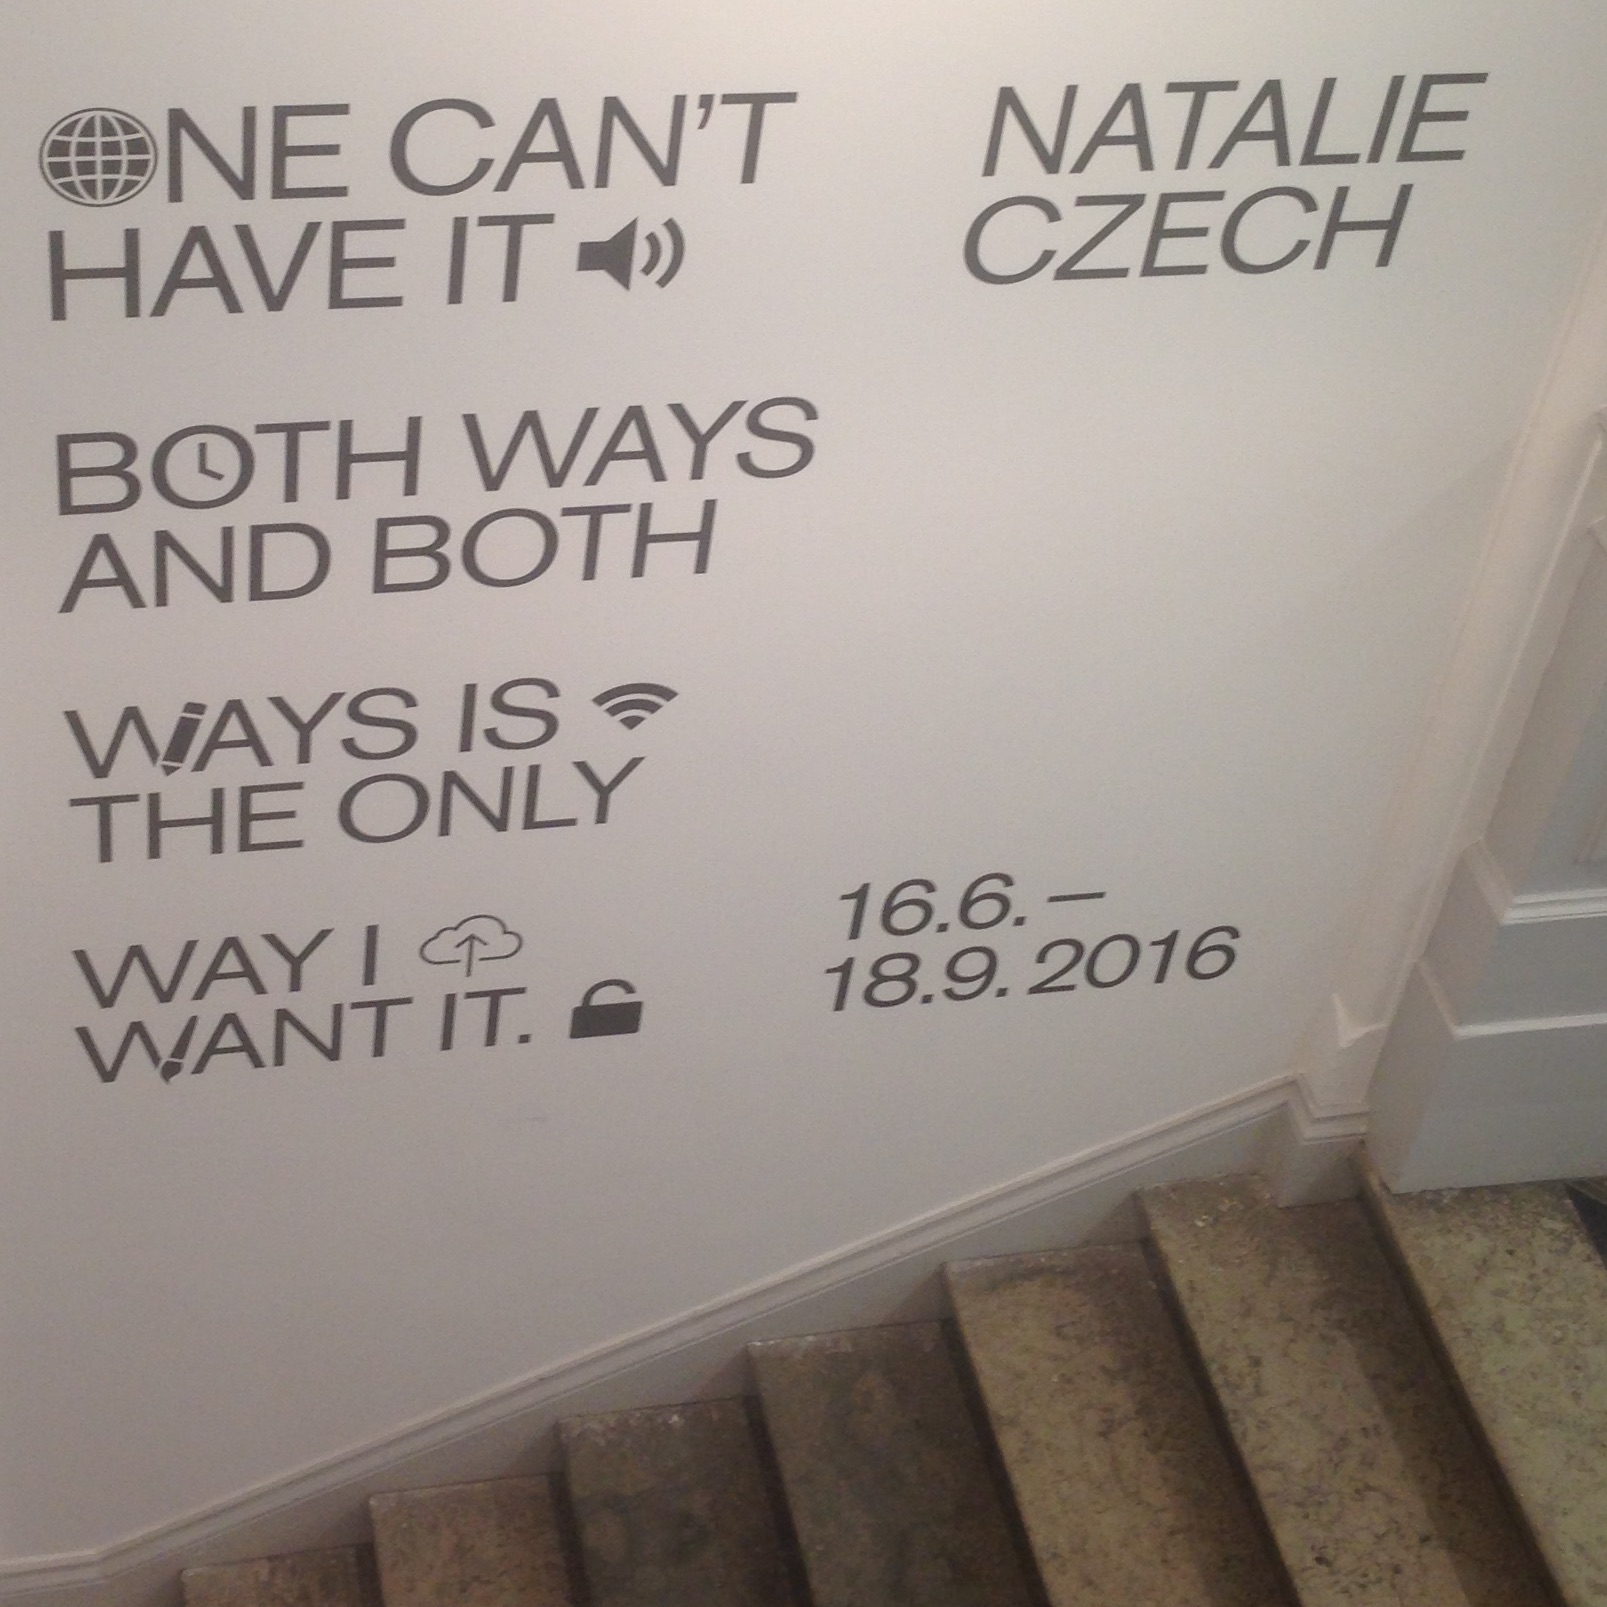 Natalie Czech, One can't have it both ways and both ways is the only way I want it, 2016